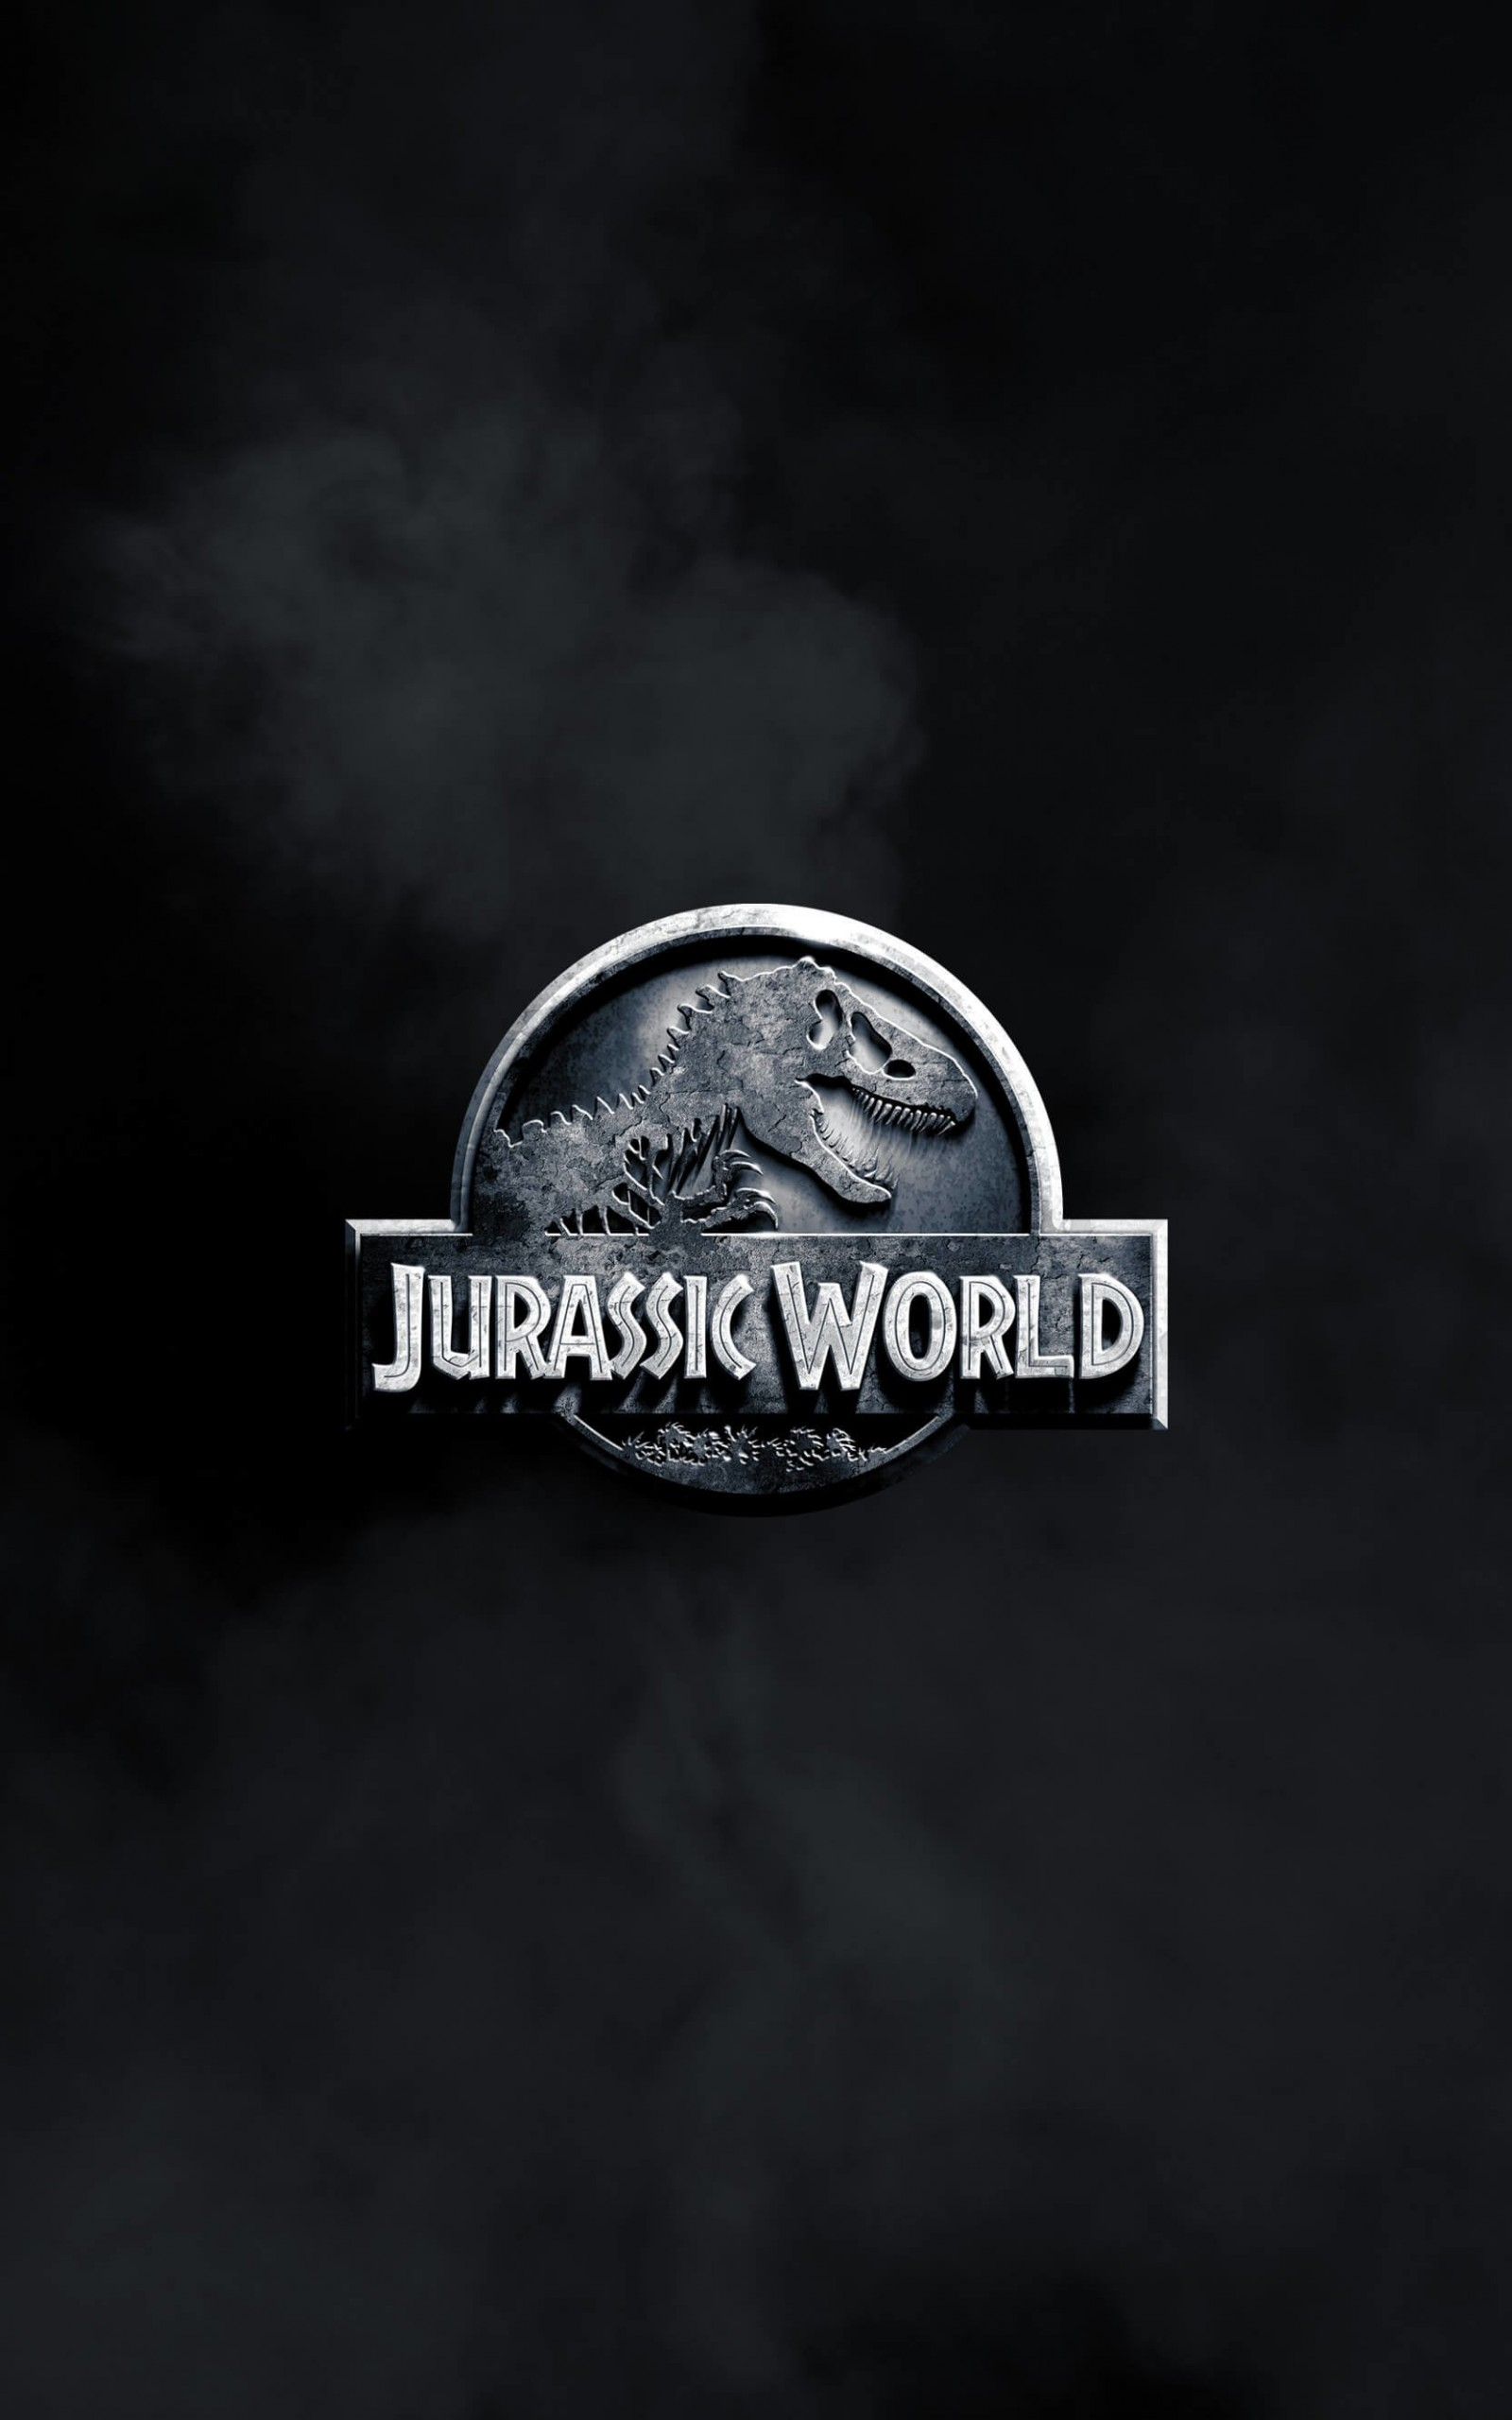 Jurassic World Wallpaper for Amazon Kindle Fire HDX 8.9